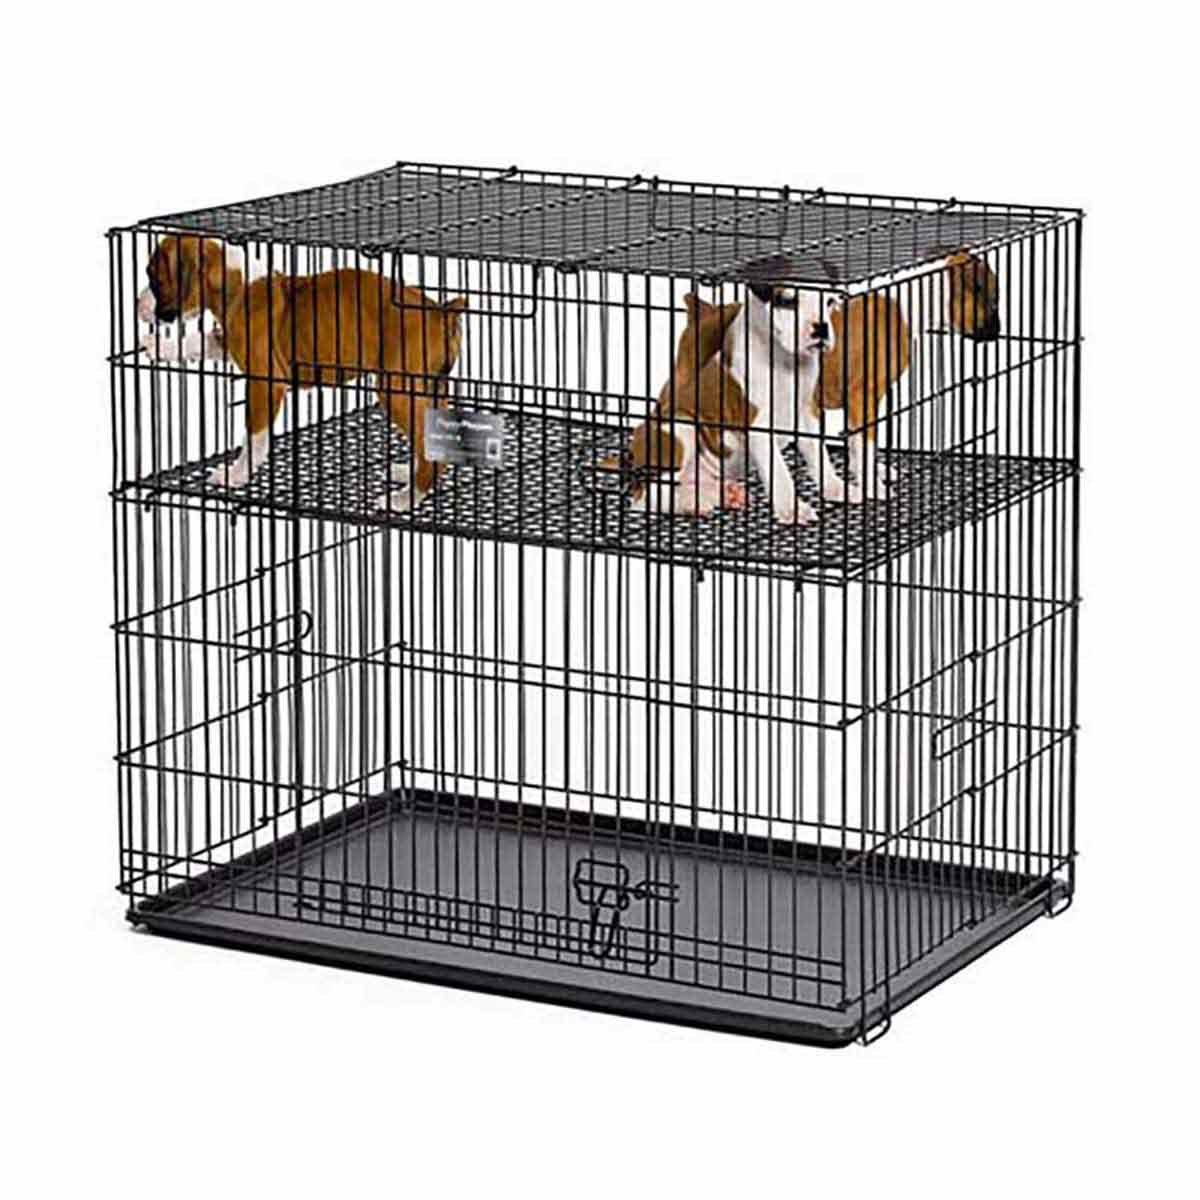 Midwest Puppy Playpen 36 inches by 24 inches by 30 inches